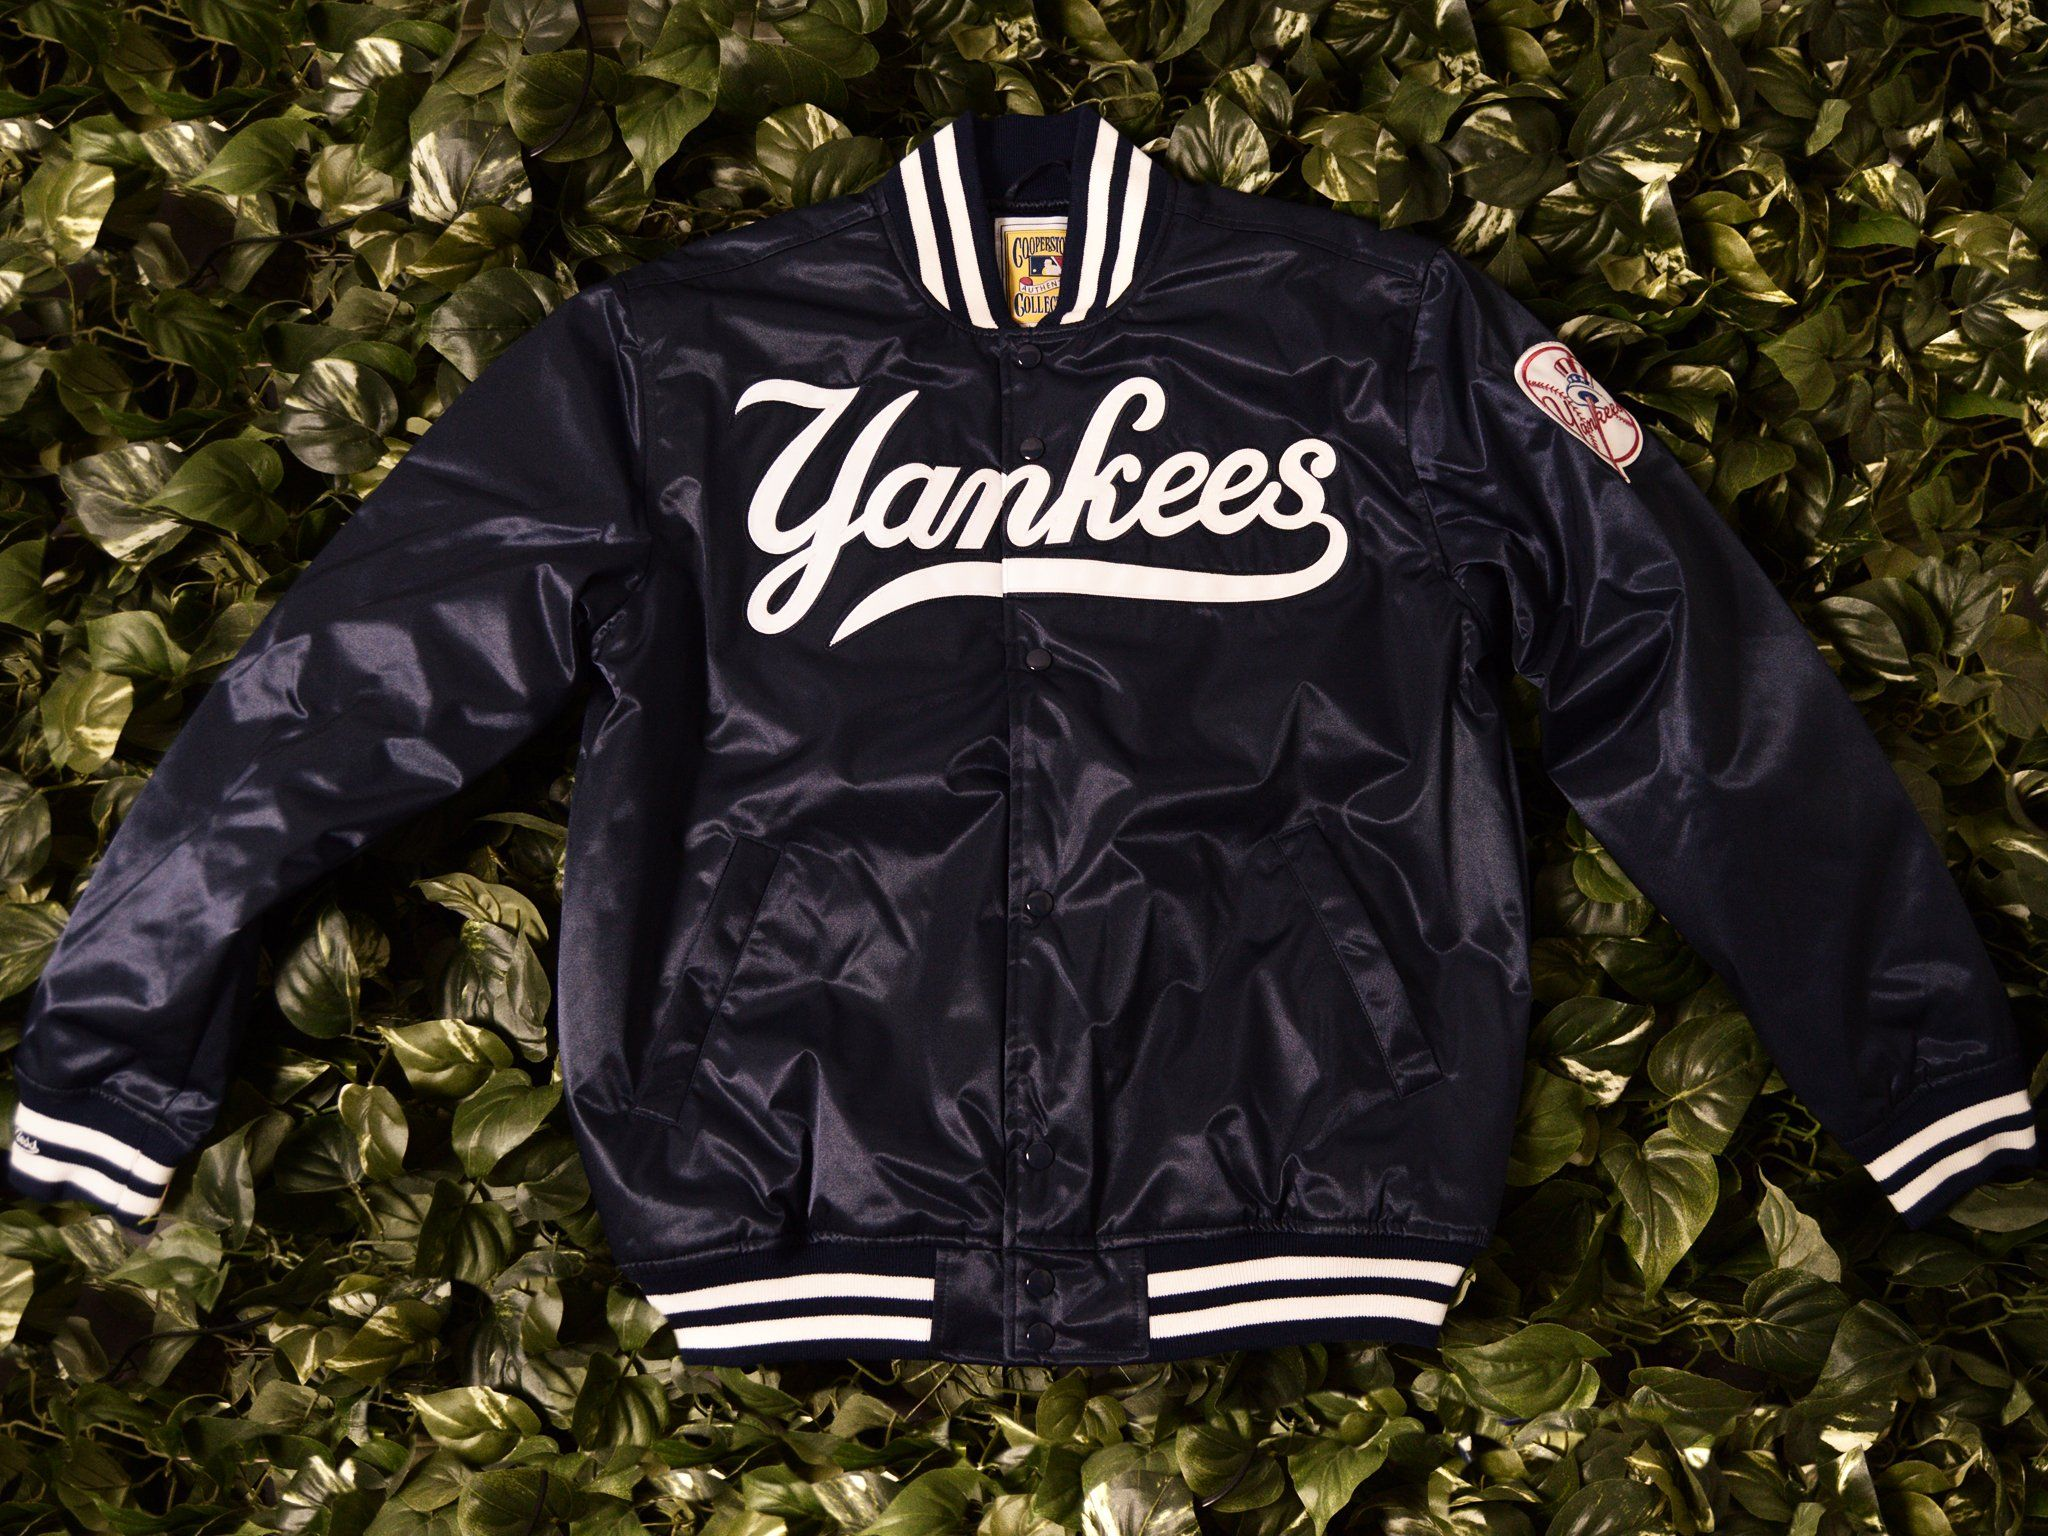 Mitchell Ness Authentic 1999 Yankees Satin Jacket 5542 418 99nyy Satin Jackets Jackets Mitchell Ness